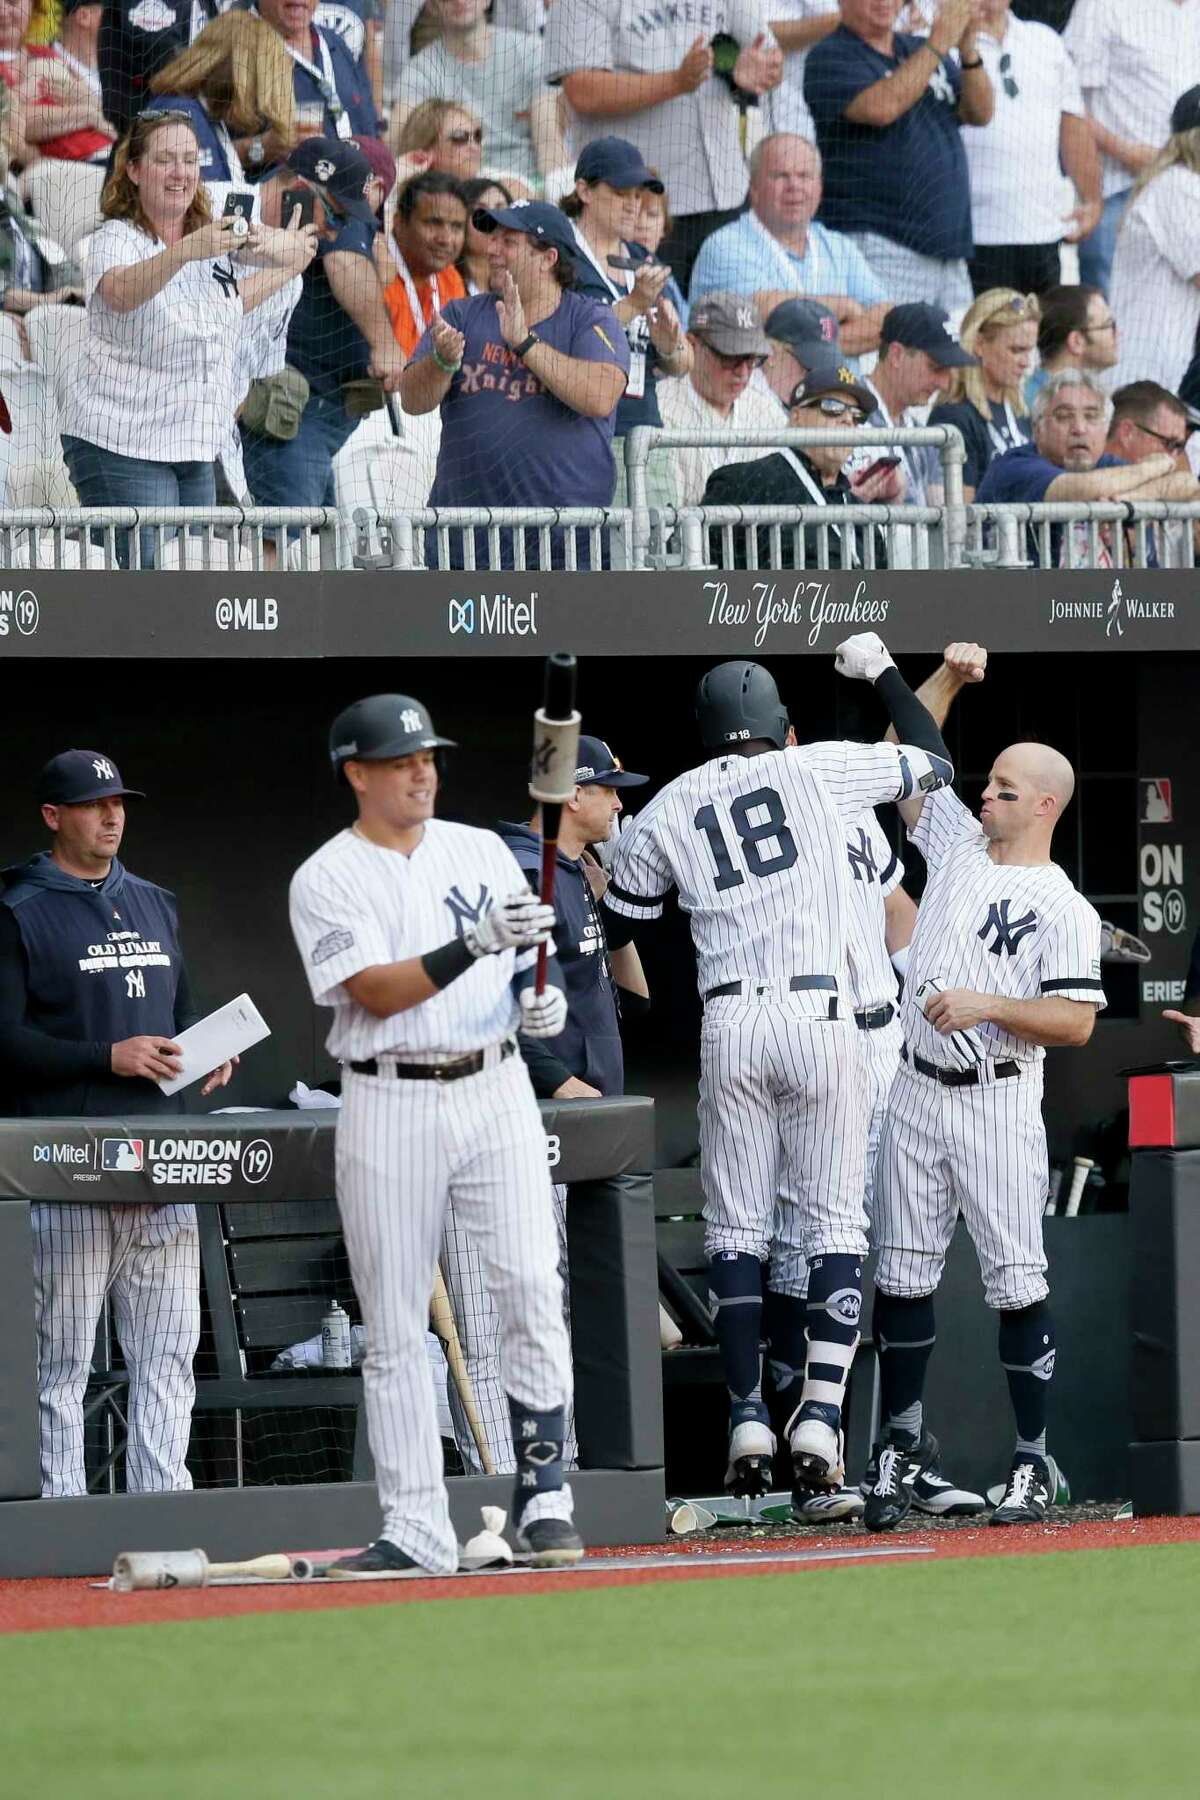 New York Yankees' Didi Gregorius (18) celebrates at the dugout after a home run against the Boston Red Sox during the sixth inning of a baseball game in London, Sunday, June 30, 2019. (AP Photo/Tim Ireland)